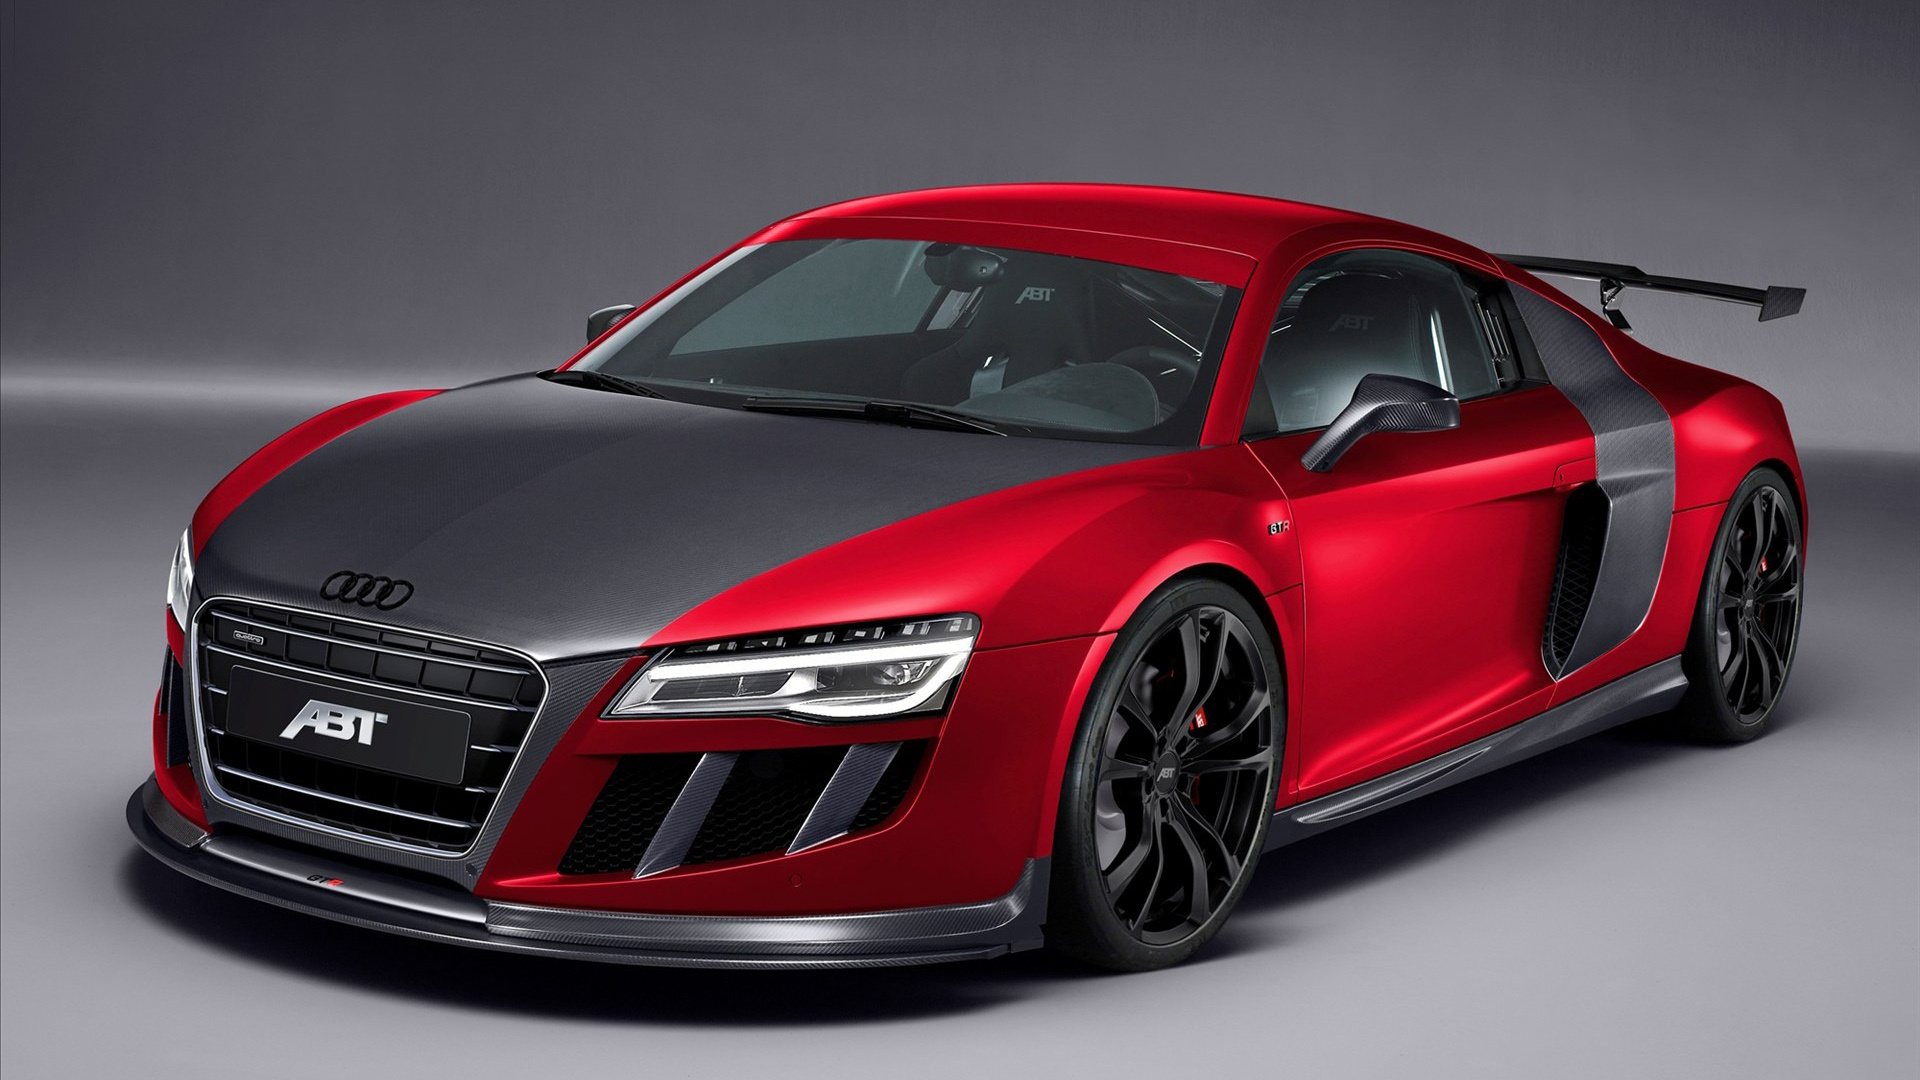 2013 abt audi r8 gtr car wallpaper 2013 abt audi r8 gtr 1920x1080 1920x1080